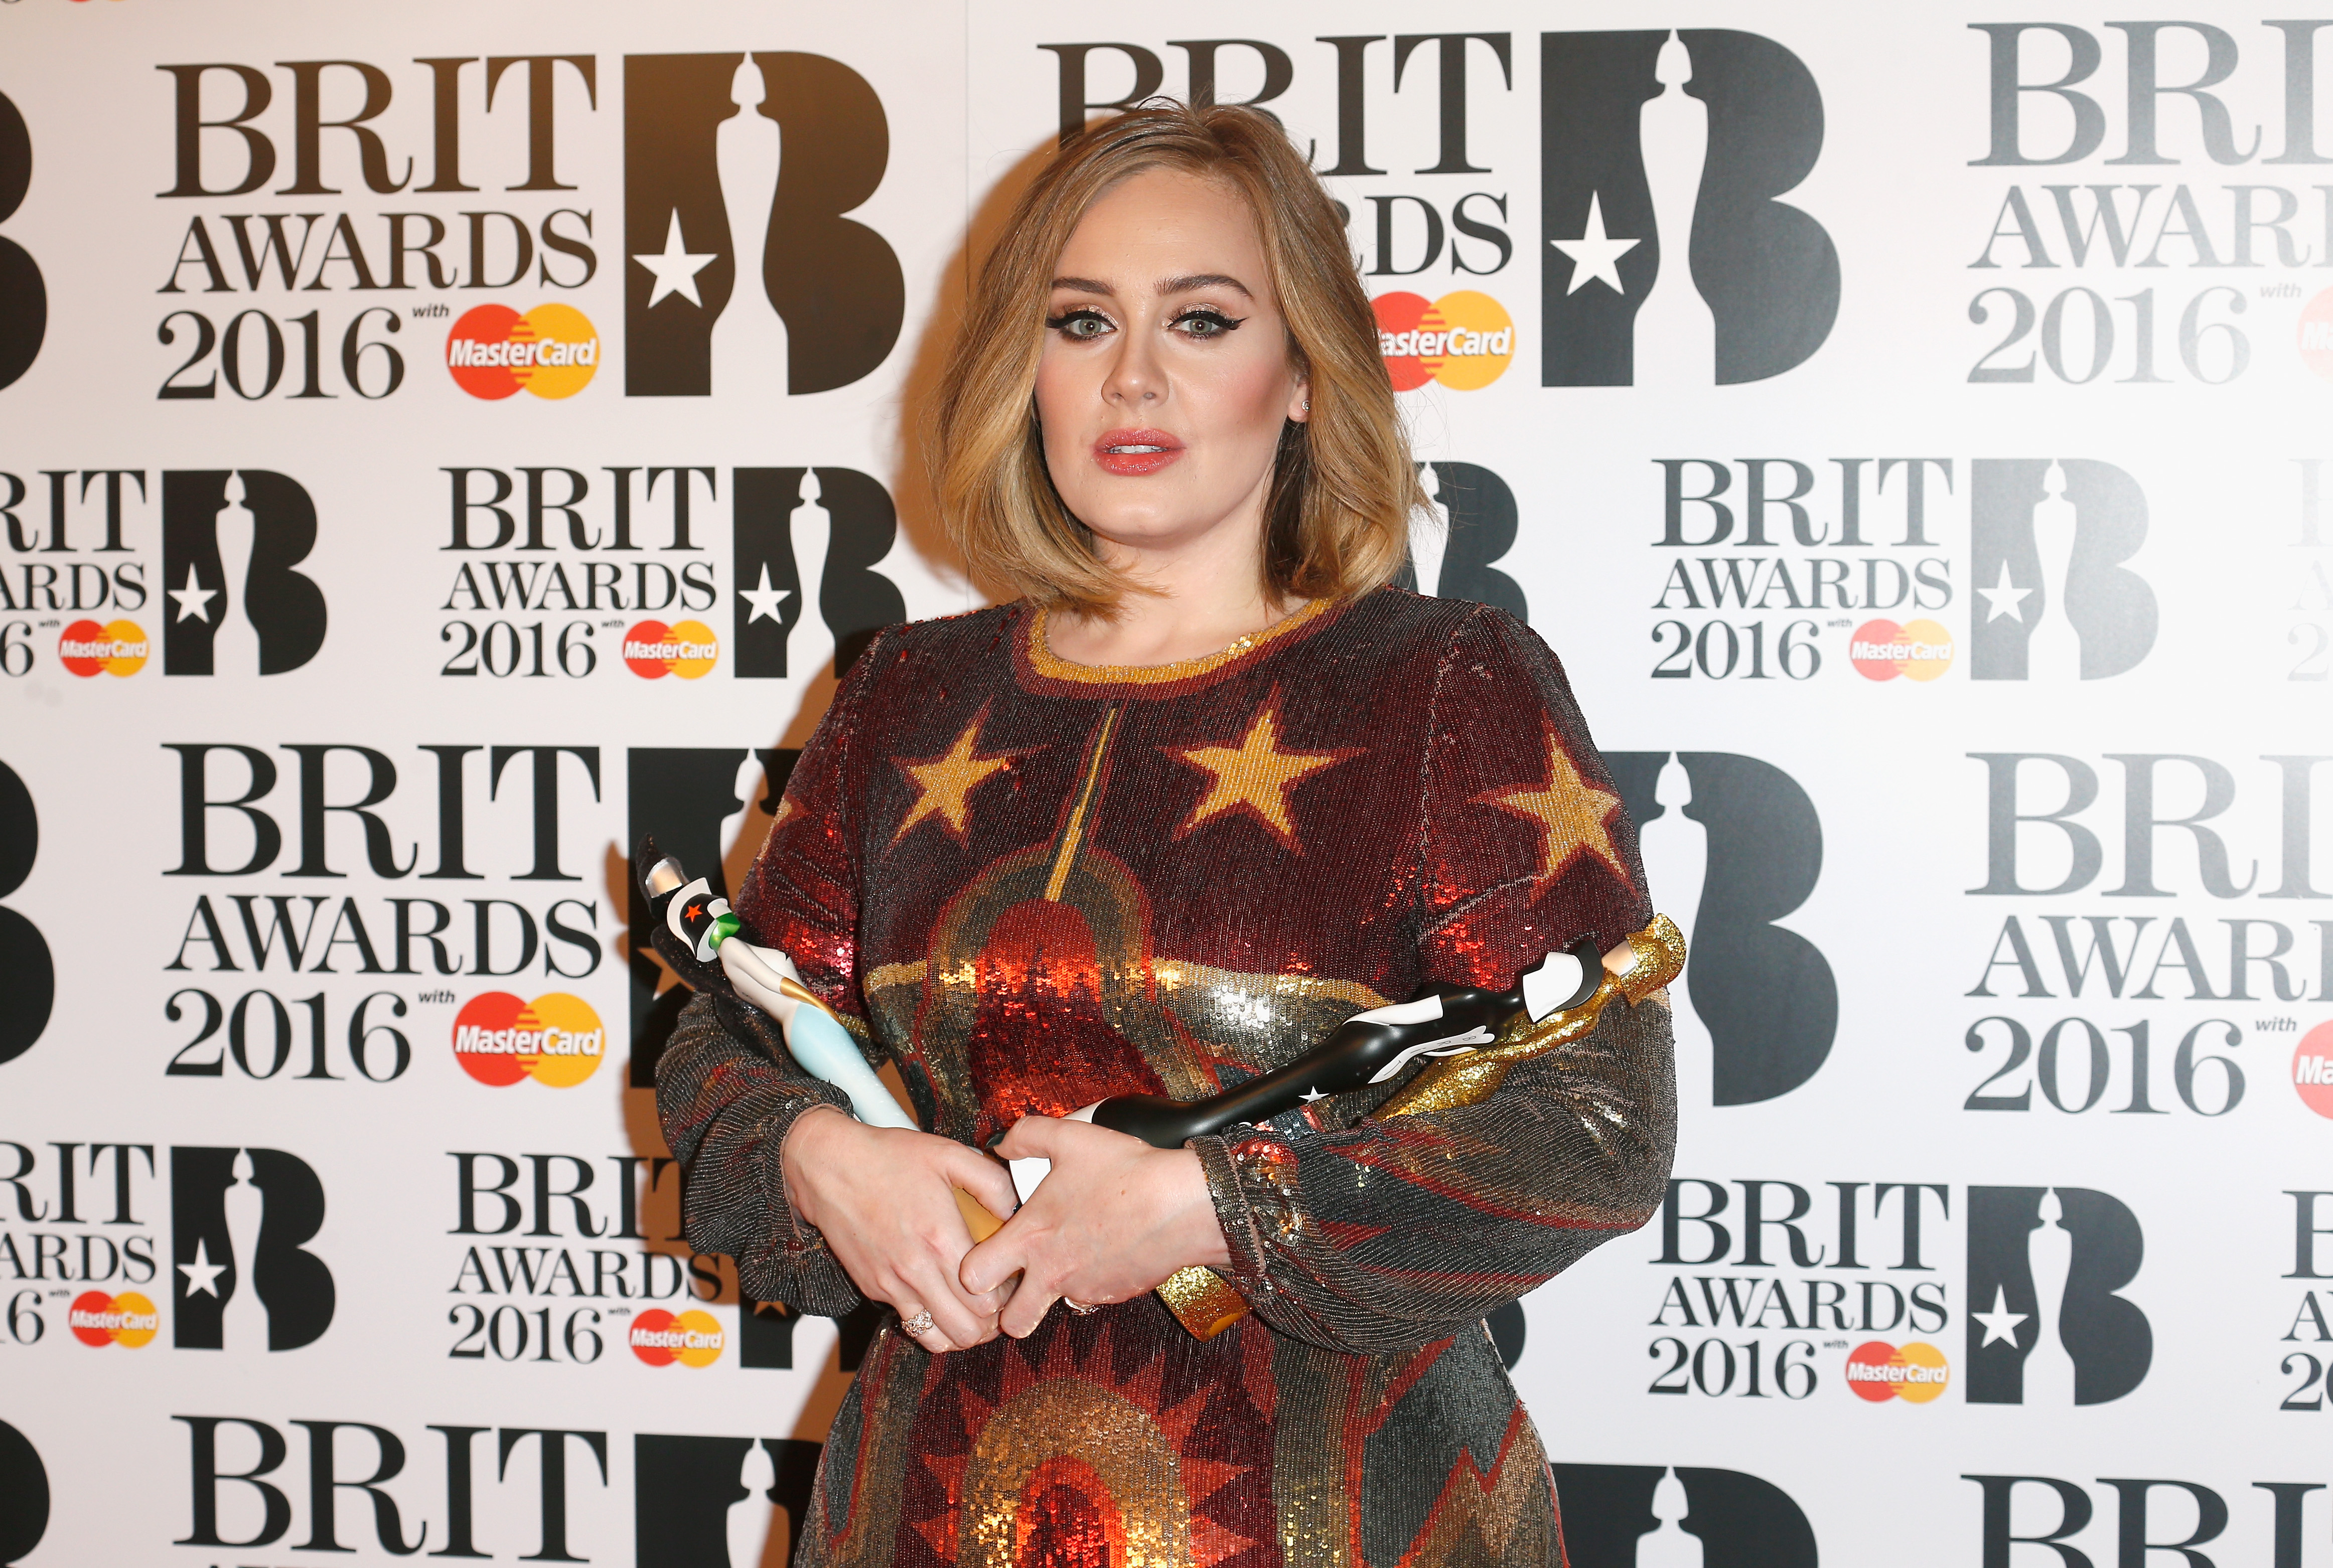 Adele is perfection in this no-makeup selfie